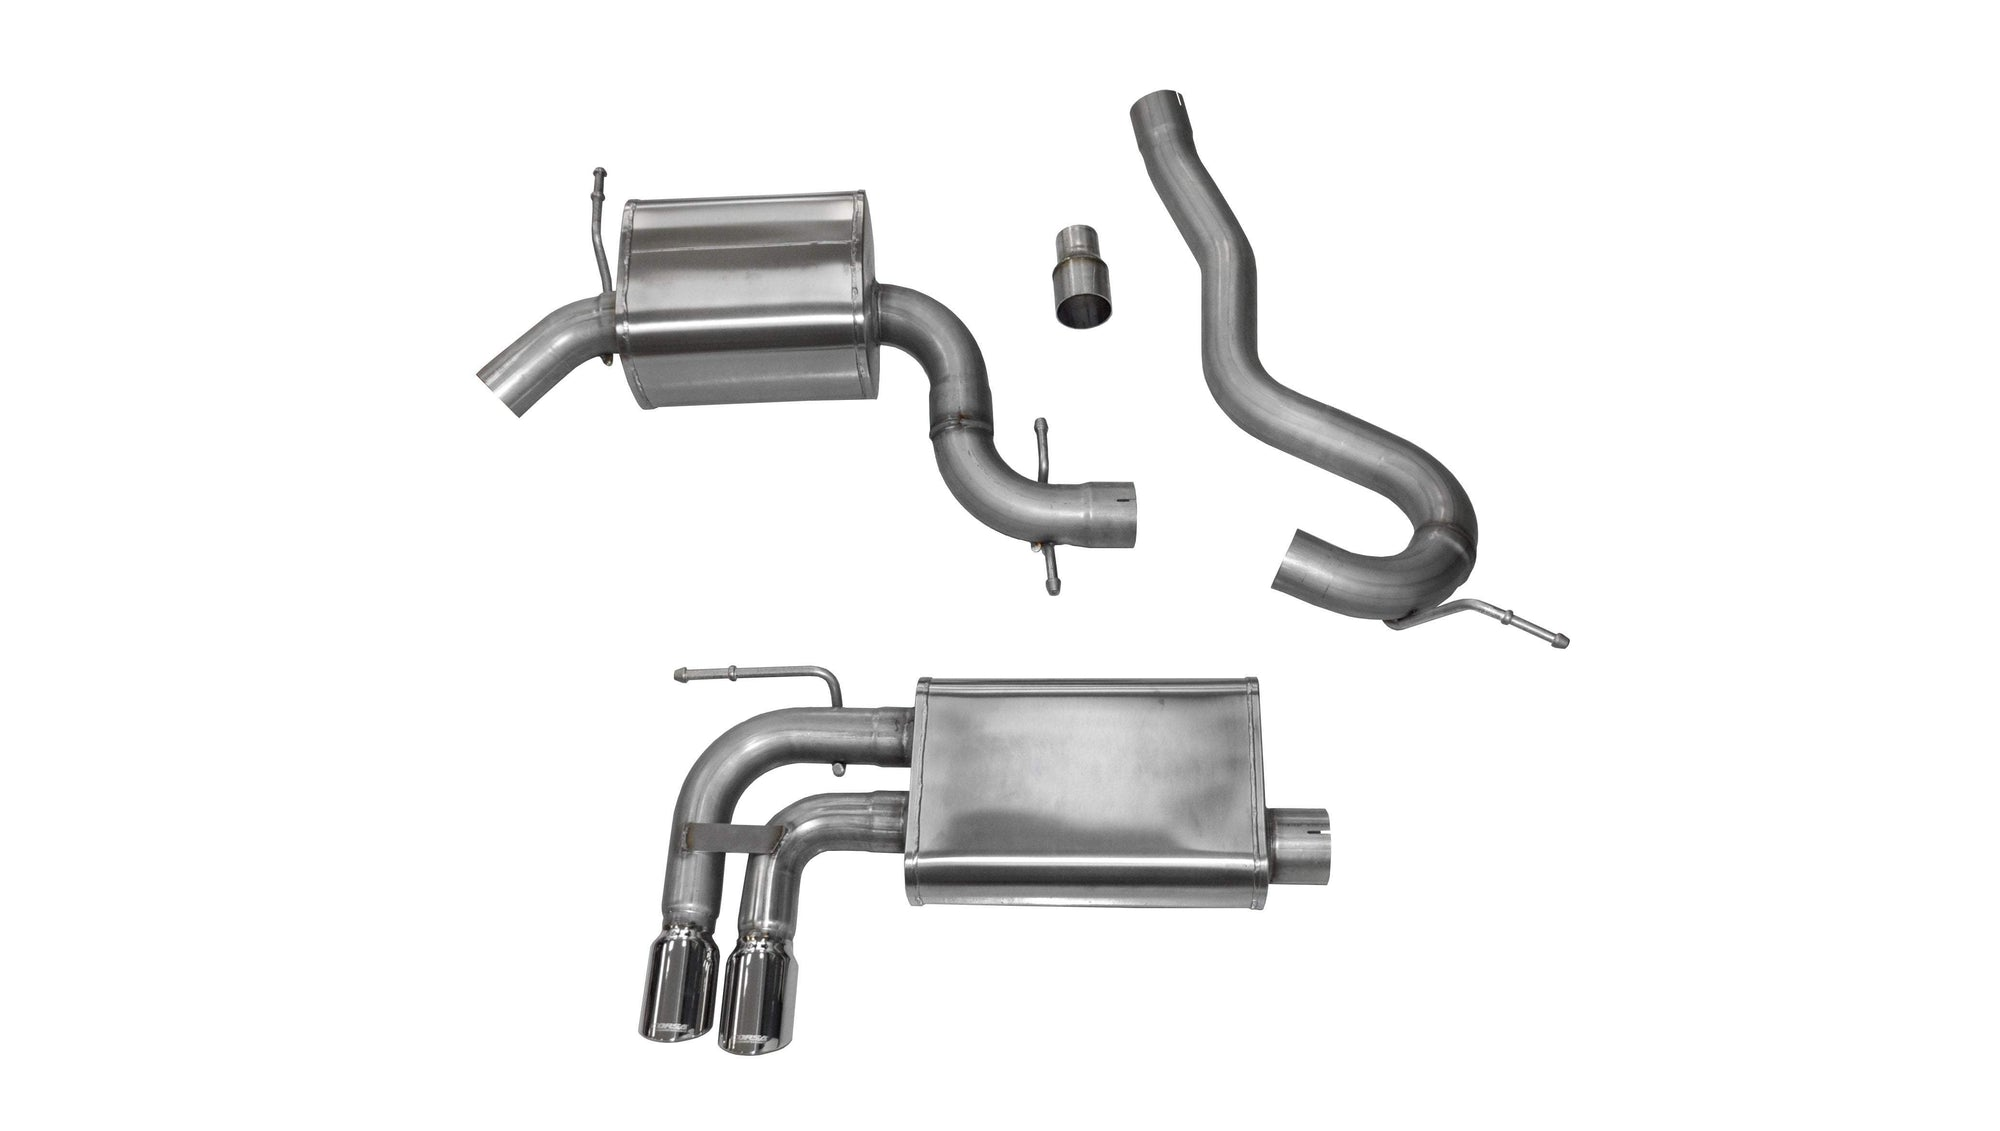 "CORSA PERFORMANCE Cat-Back Exhaust Polished / Touring / Single Rear - Twin 3.0in 2006-2014 Audi A3 BP, 2.0T, 3.0"" Single Rear Exit Cat-Back Exhaust System with Twin 3.0"" Tips (14545) Touring Sound Level"